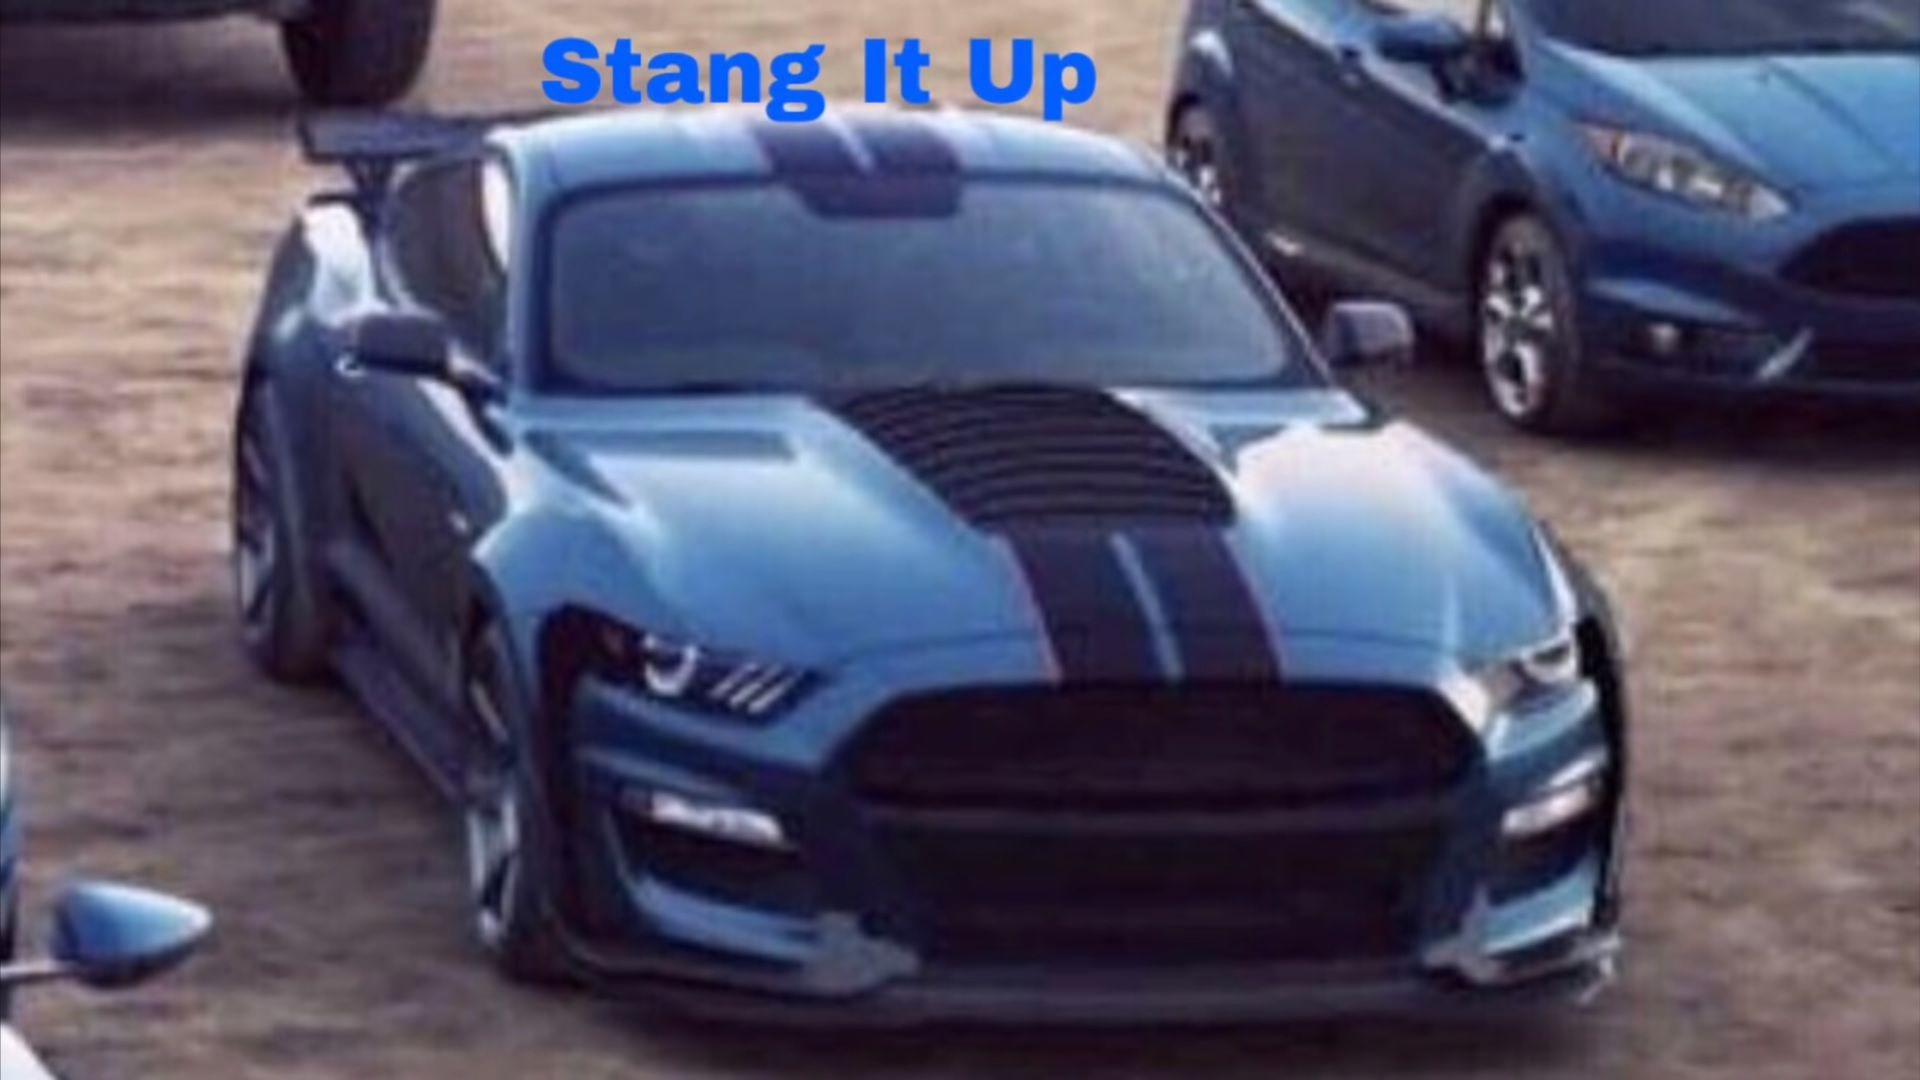 Is This Really The 2020 Ford Mustang Shelby Gt500r Cars Ford Mustang Shelby Mustang Ford Mustang